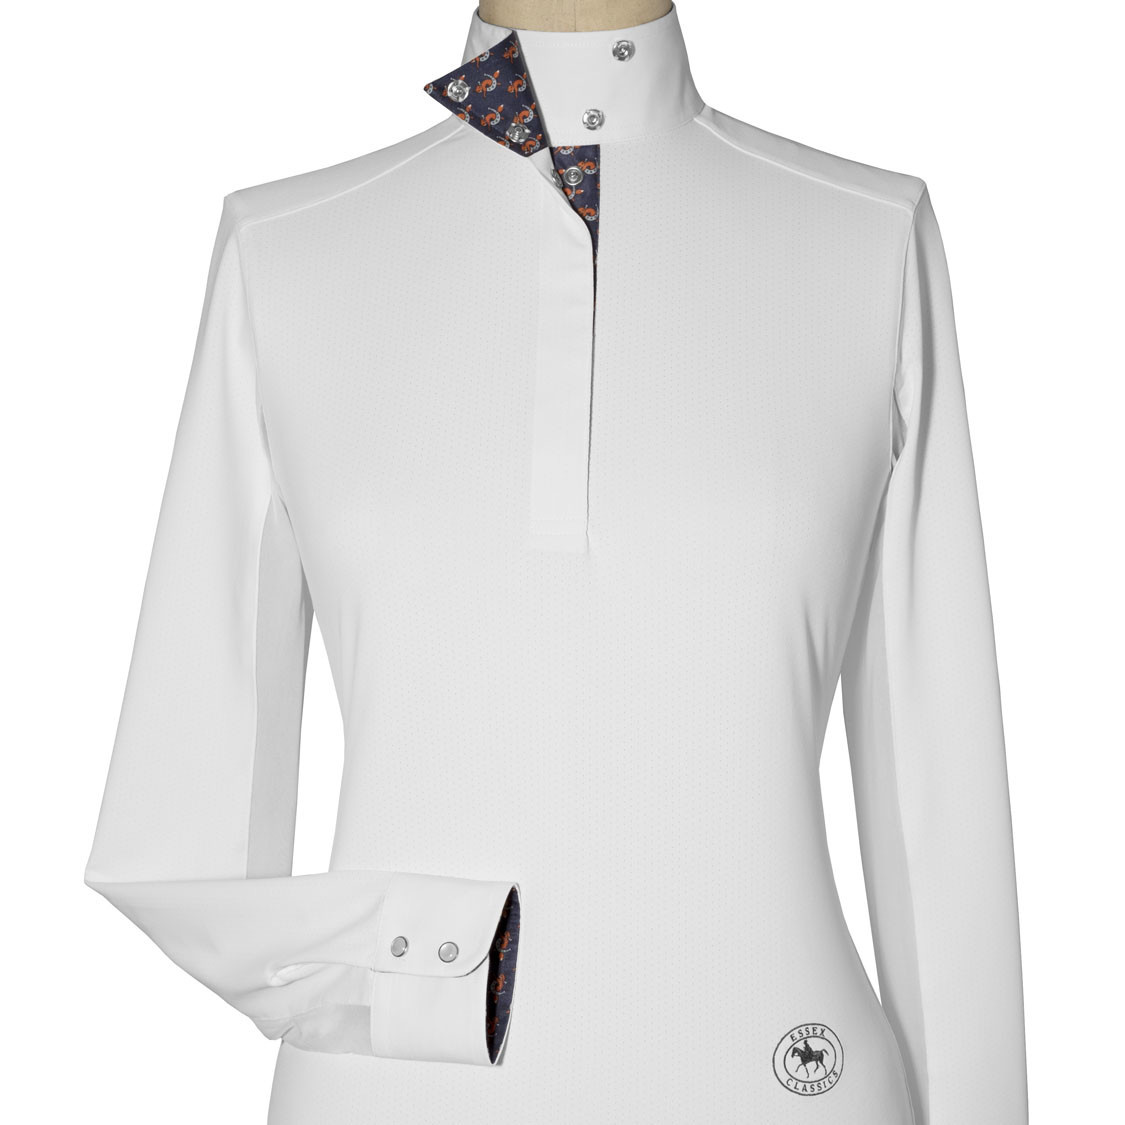 "Essex Essex ""Fox"" Ladies Talent Yarn Wrap Collar Show Shirt"